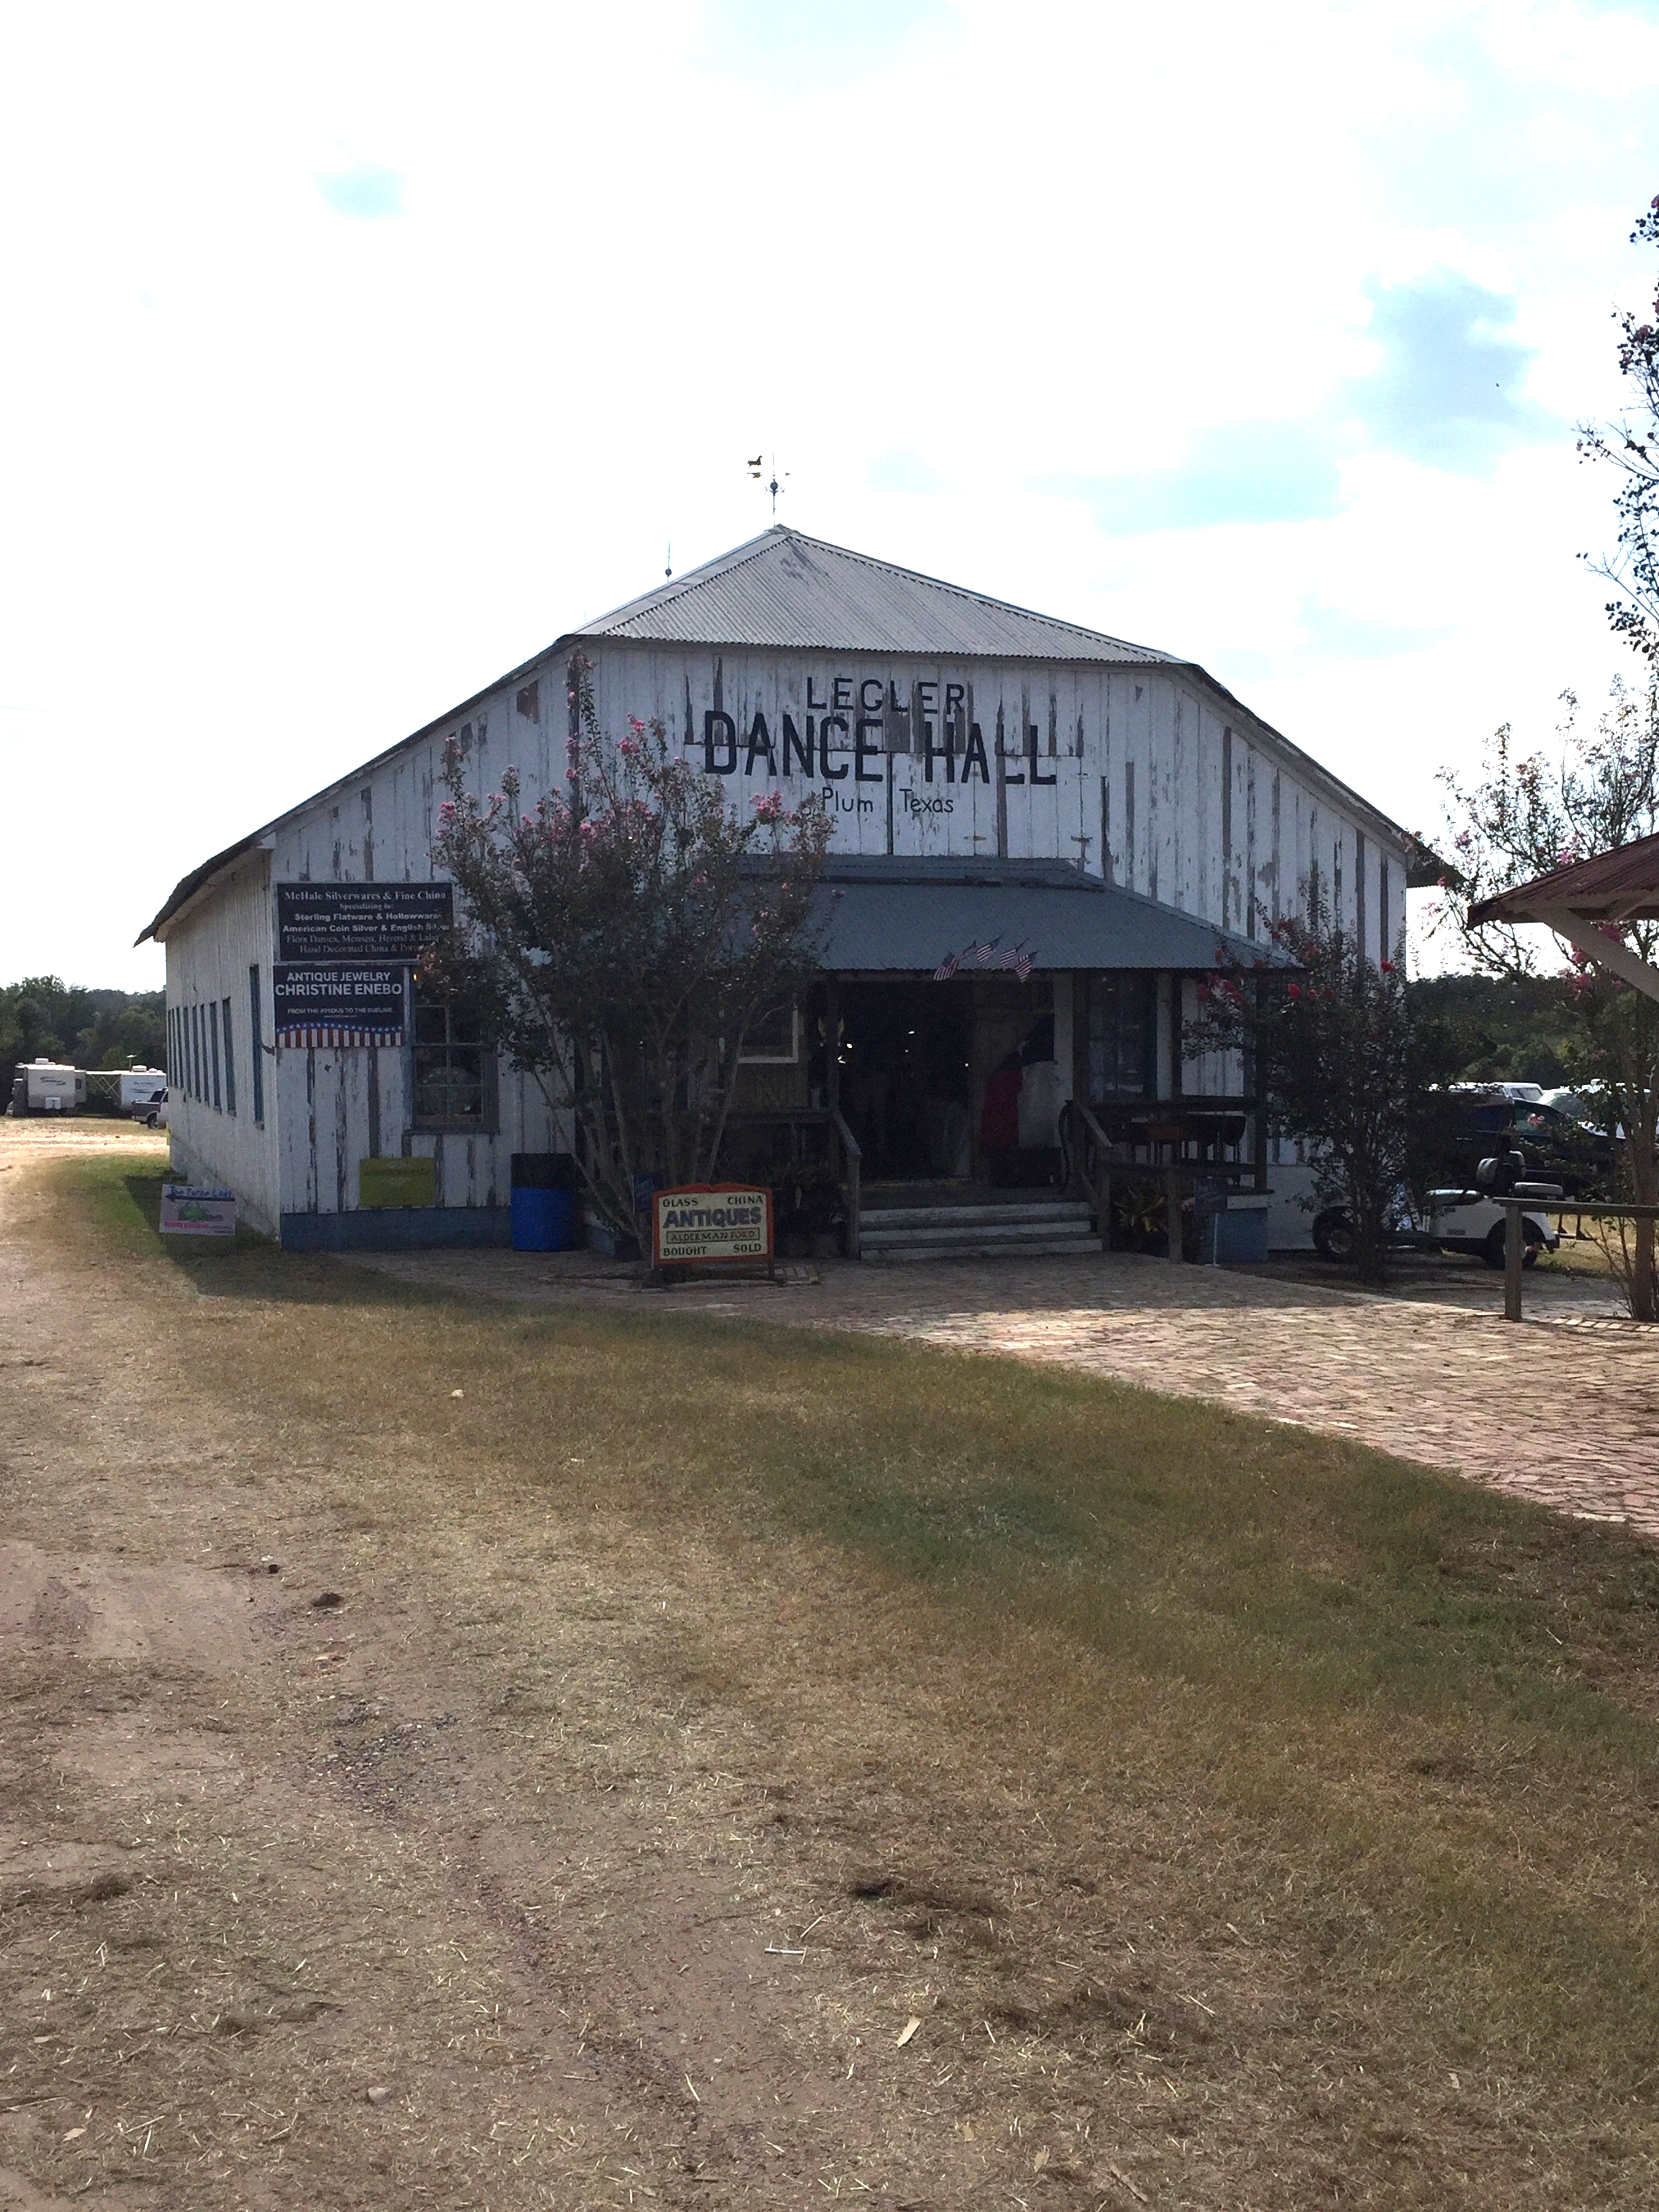 Along with the large temporary tents, the property has relocated old dance halls and general stores to also house vendors.